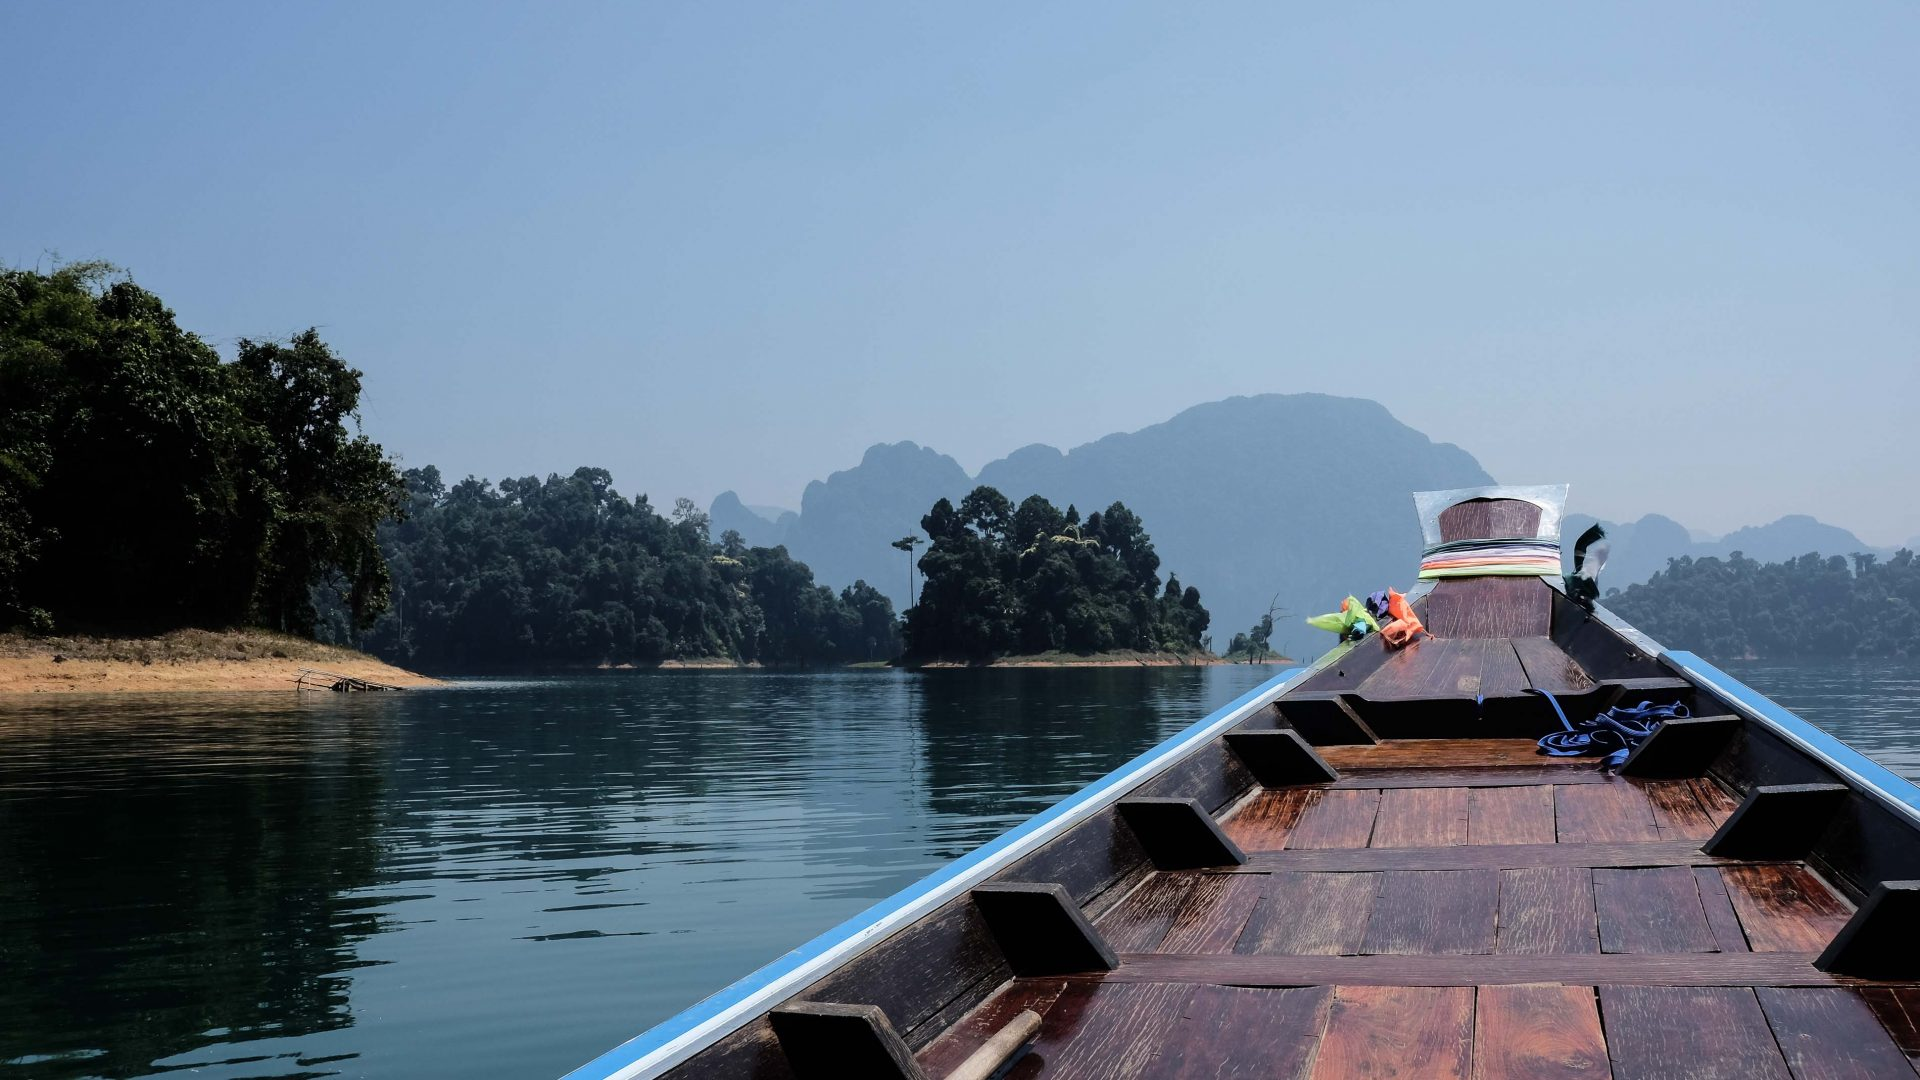 A longtail boat ride on Cheow Lan Lake in Khao Sok National Park, southern Thailand.